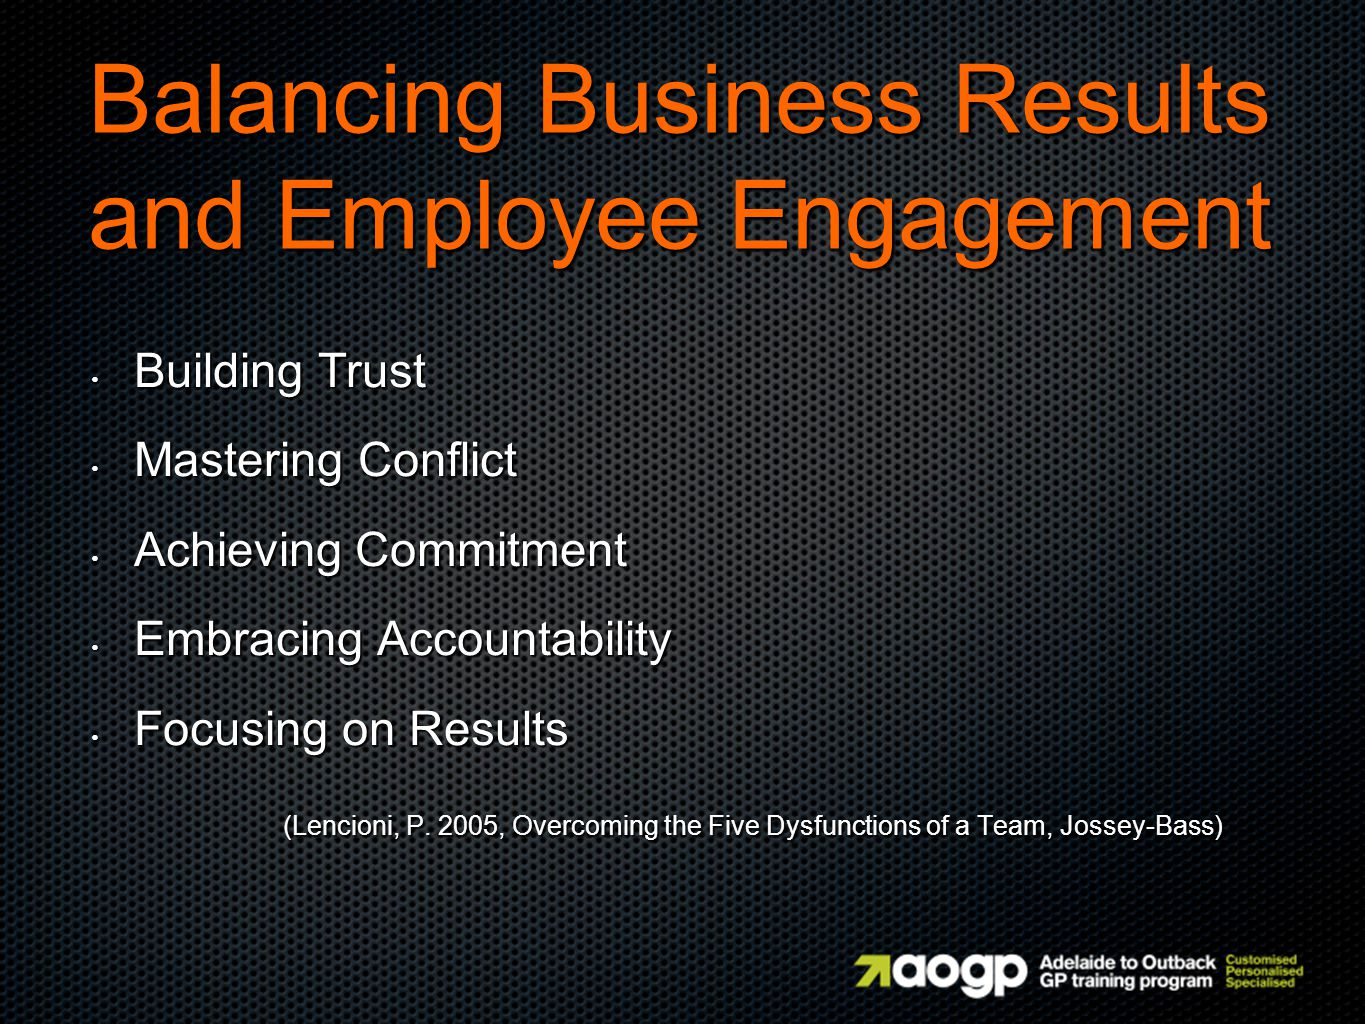 Balancing Business Results and Employee Engagement Building Trust Building Trust Mastering Conflict Mastering Conflict Achieving Commitment Achieving Commitment Embracing Accountability Embracing Accountability Focusing on Results Focusing on Results (Lencioni, P.